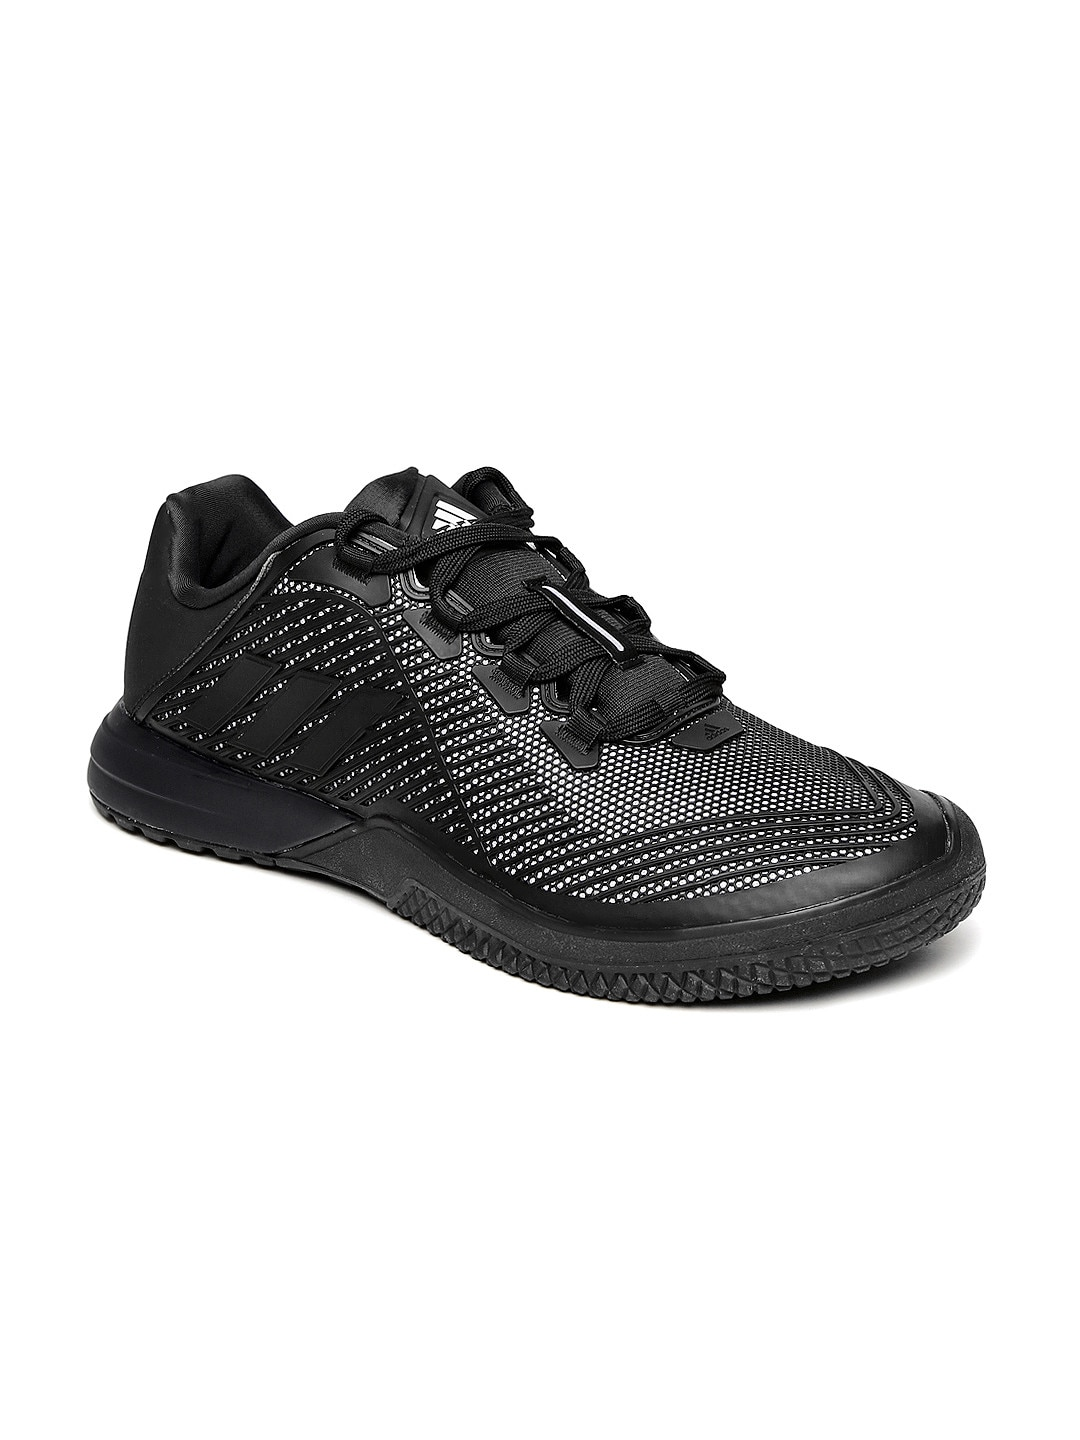 0aba1d1a0926a Adidas b08194 Men Black Shove Basketball Shoes - Best Price in India ...